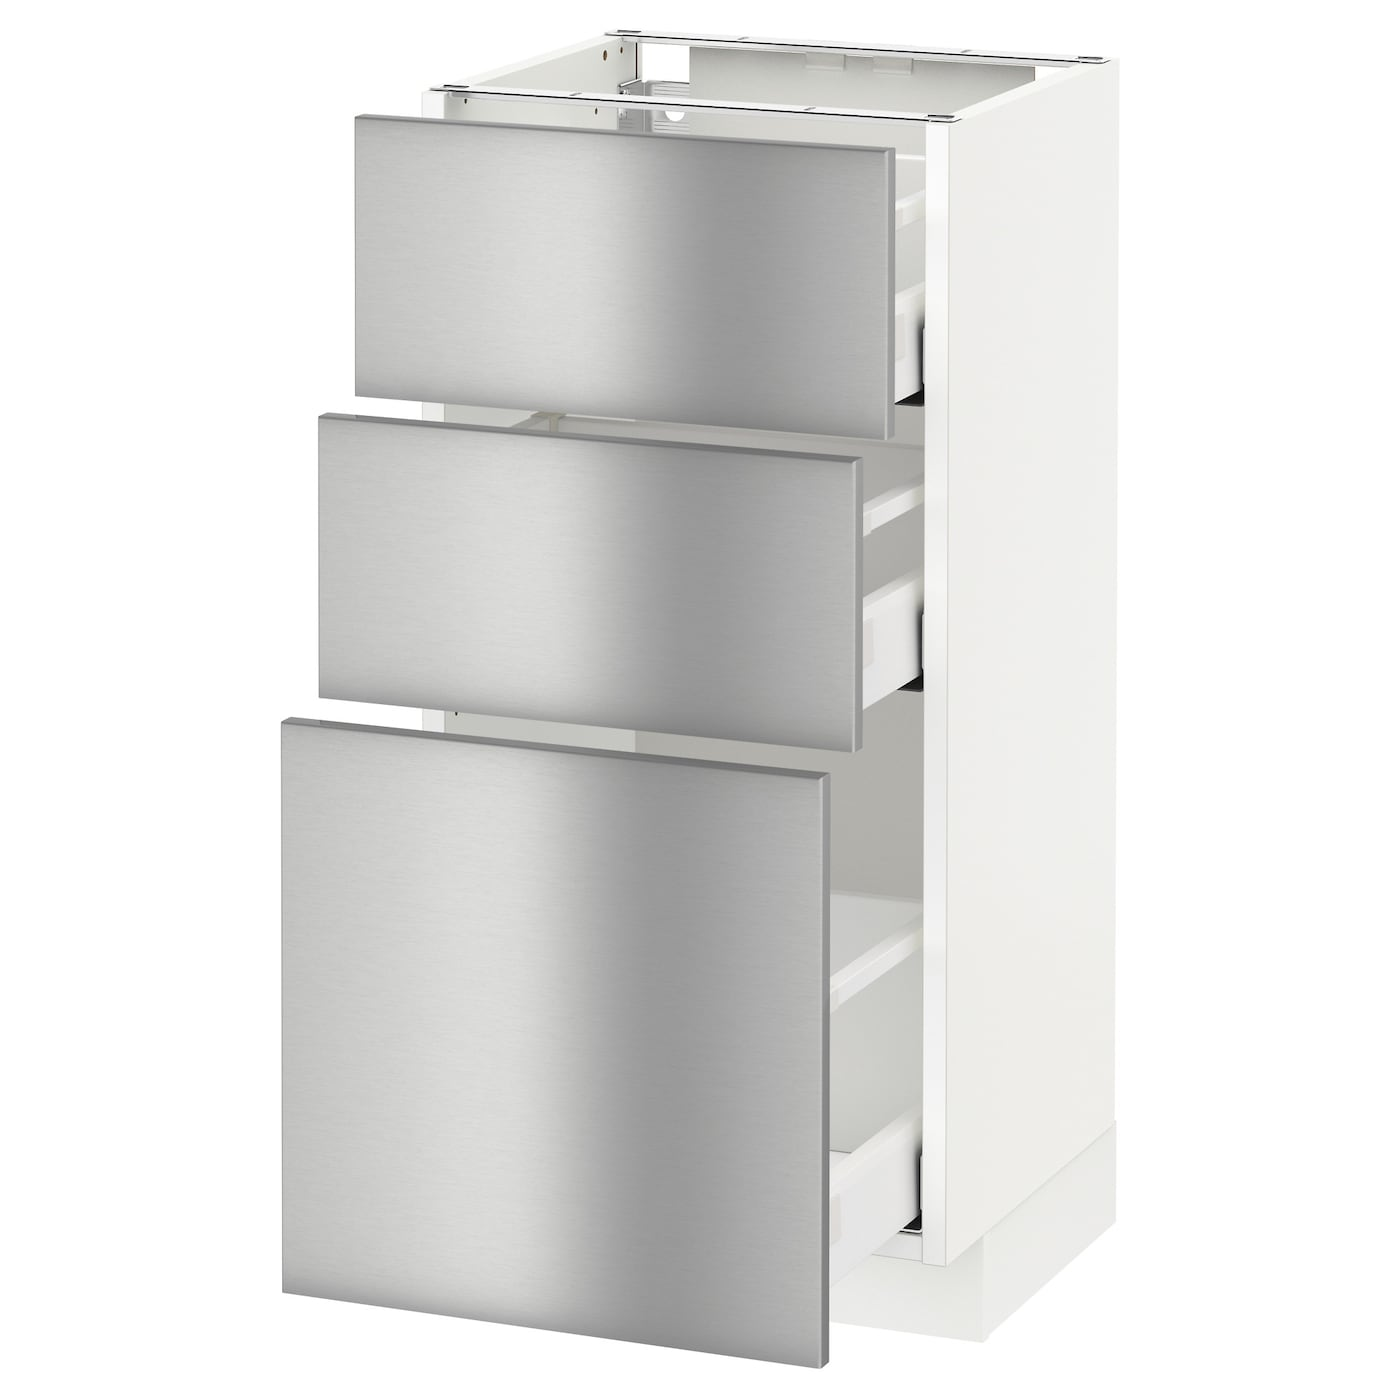 Metod maximera base cabinet with 3 drawers white grevsta for Stainless steel drawers kitchen